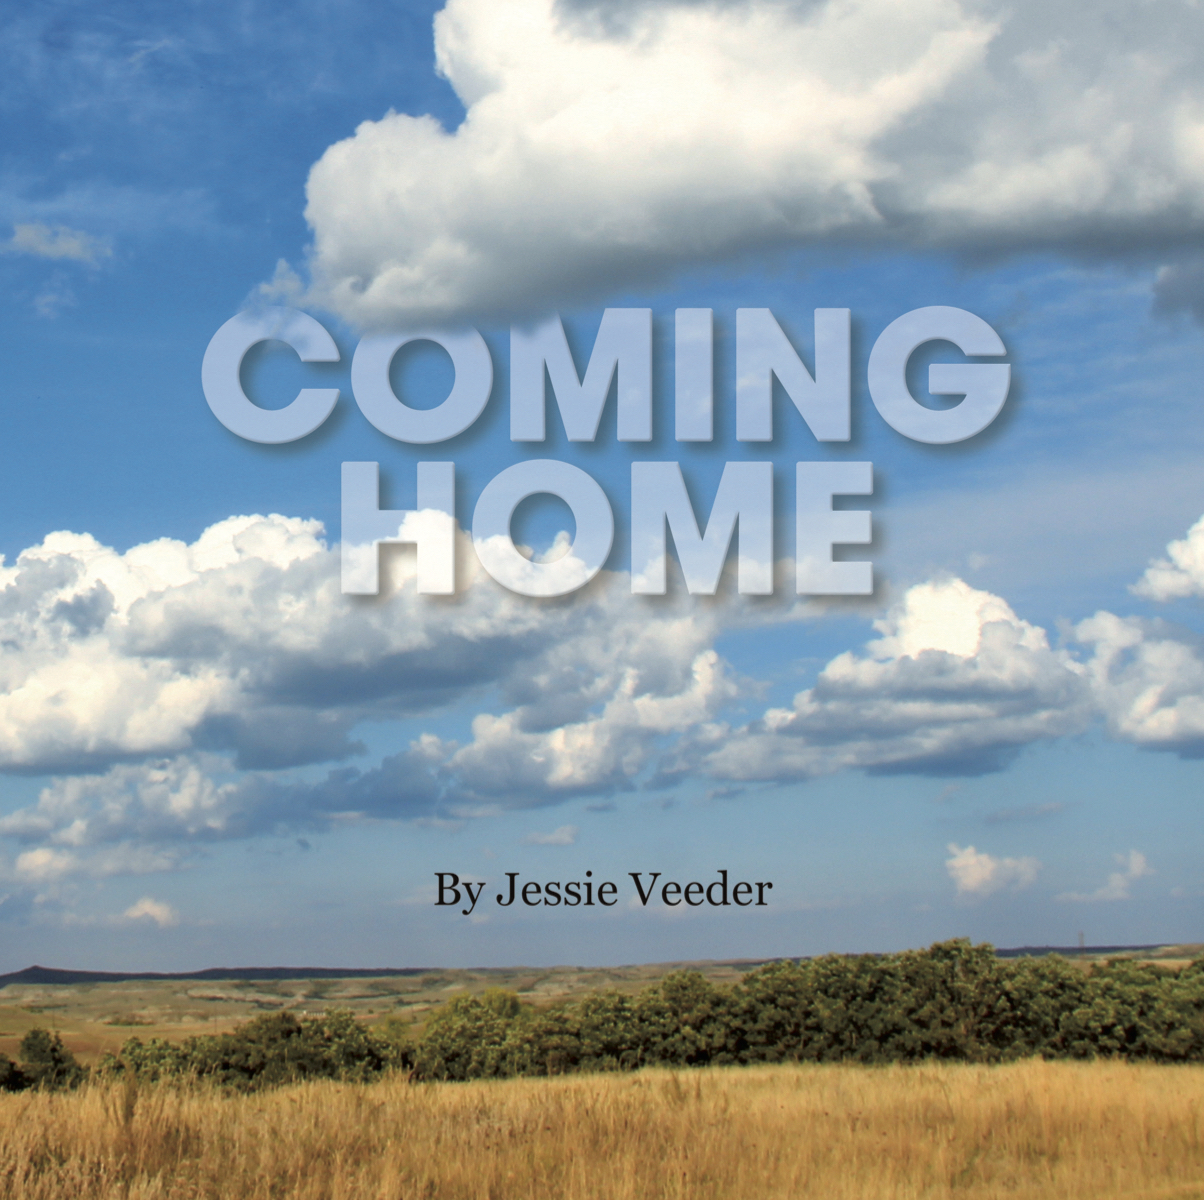 Jessie Veeder Book Cover copy